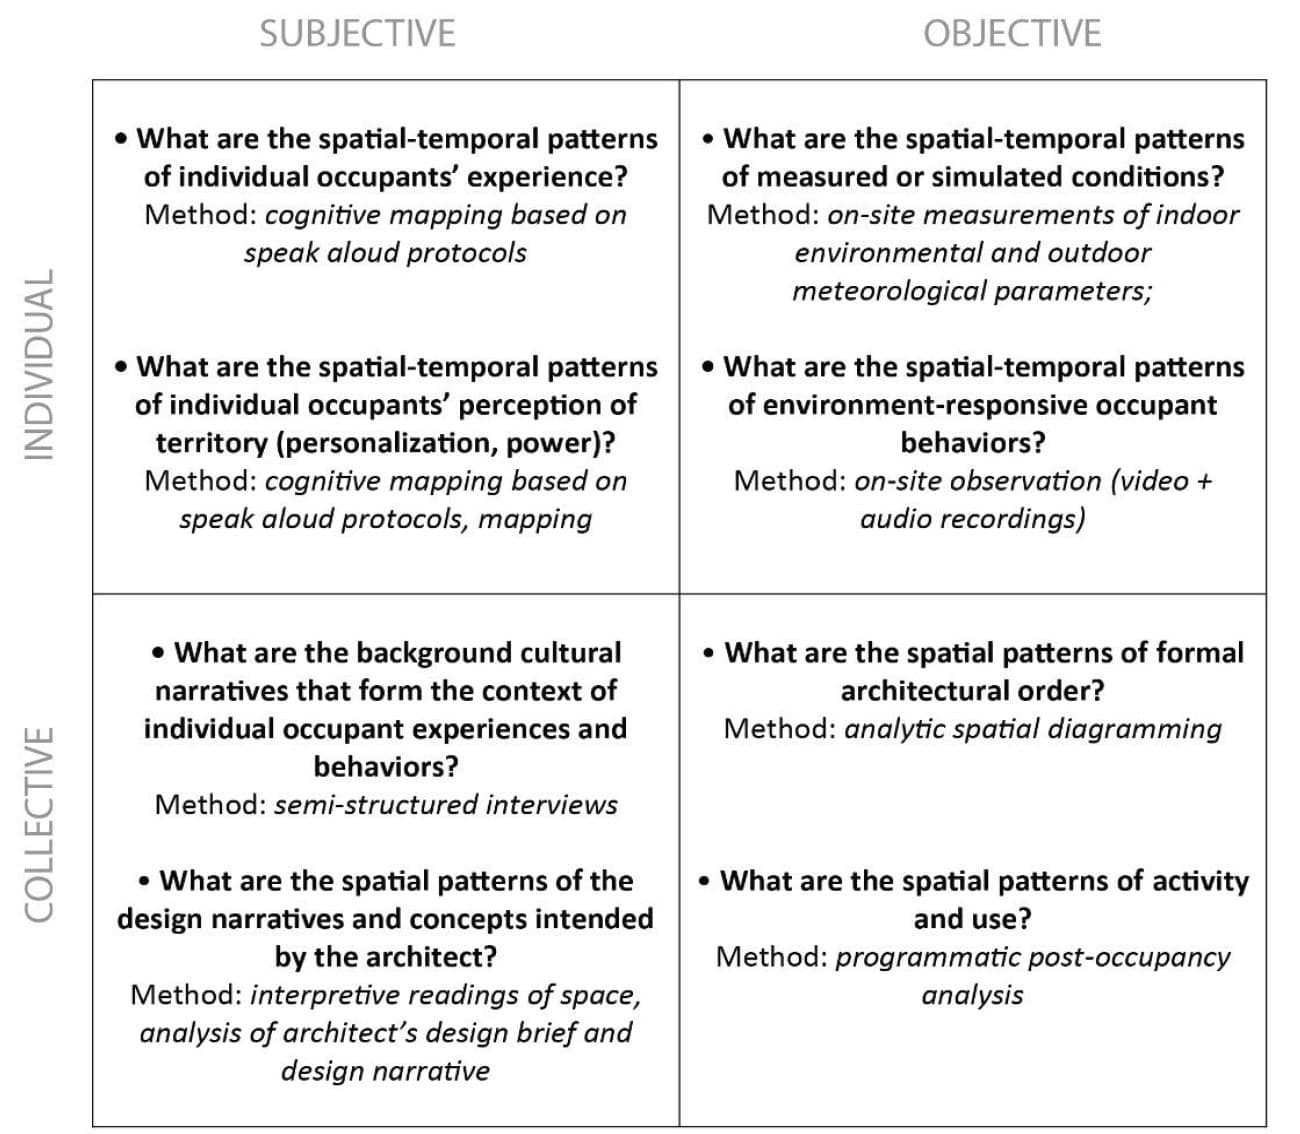 Research questions and methods in the four perspectives by Astrid Roetzel and Mark Dekay